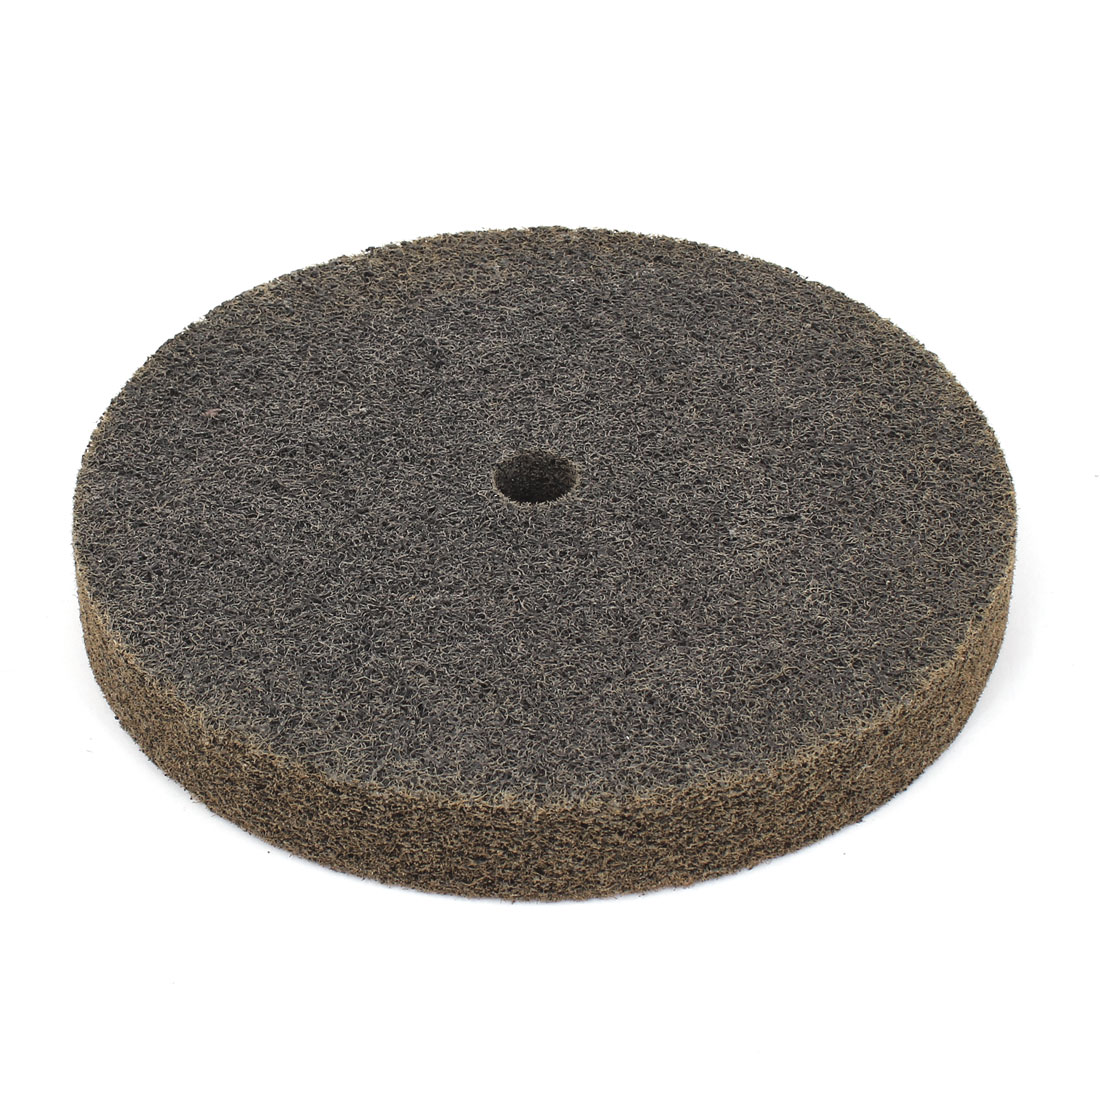 "Unique Bargains Olive Green Nylon Fiber 60 Grit 8"" x 1"" Cylindrical Abrasives Grinding Wheel"